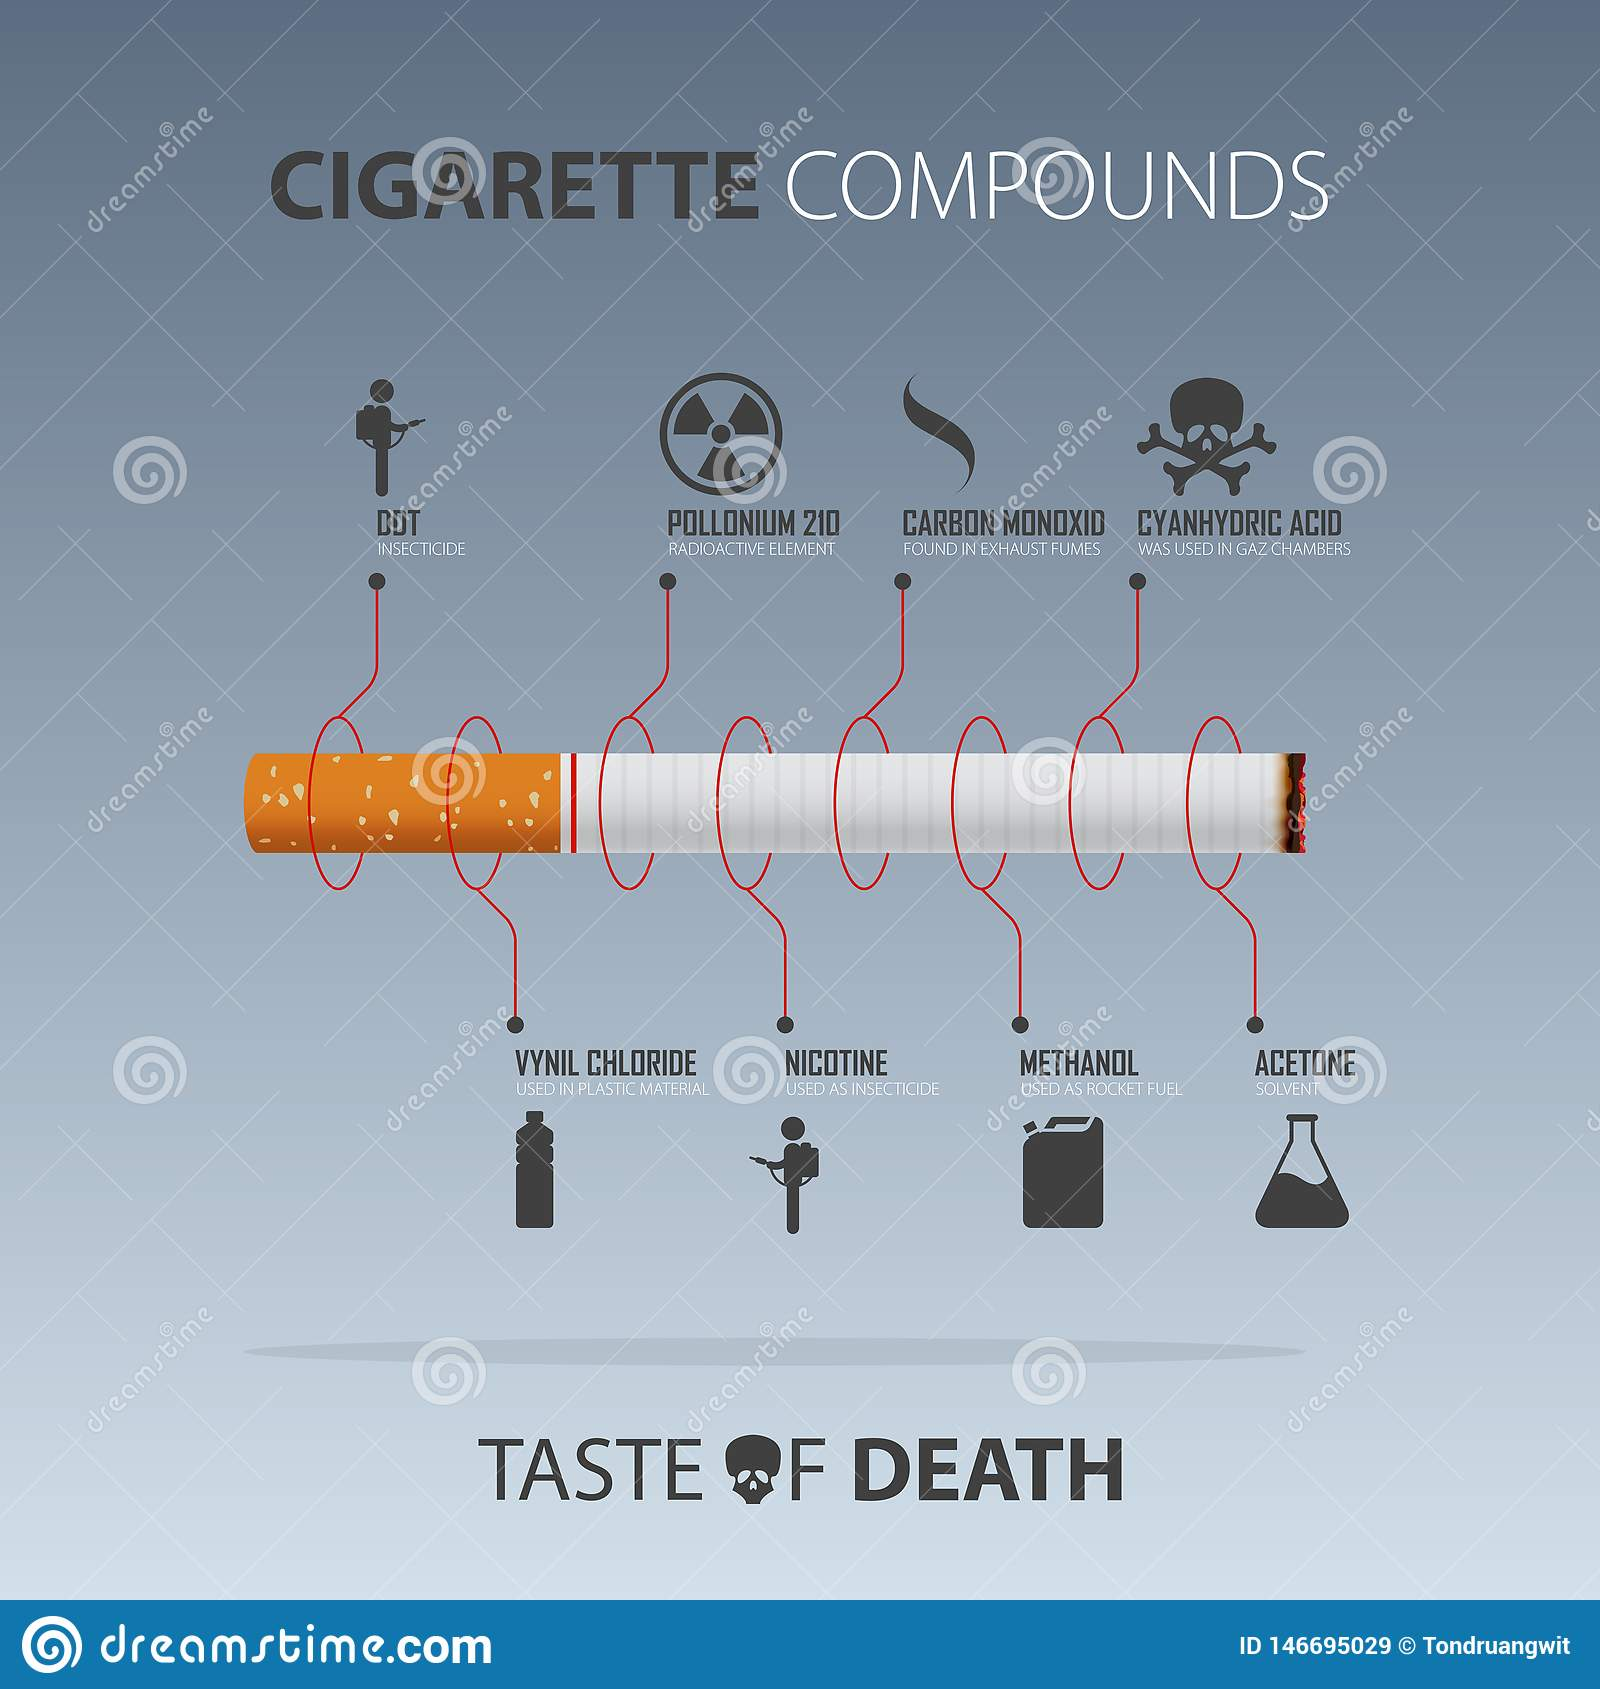 May 31st World No Tobacco Day infographic. Danger from the compound of cigarettes infographic. Vector